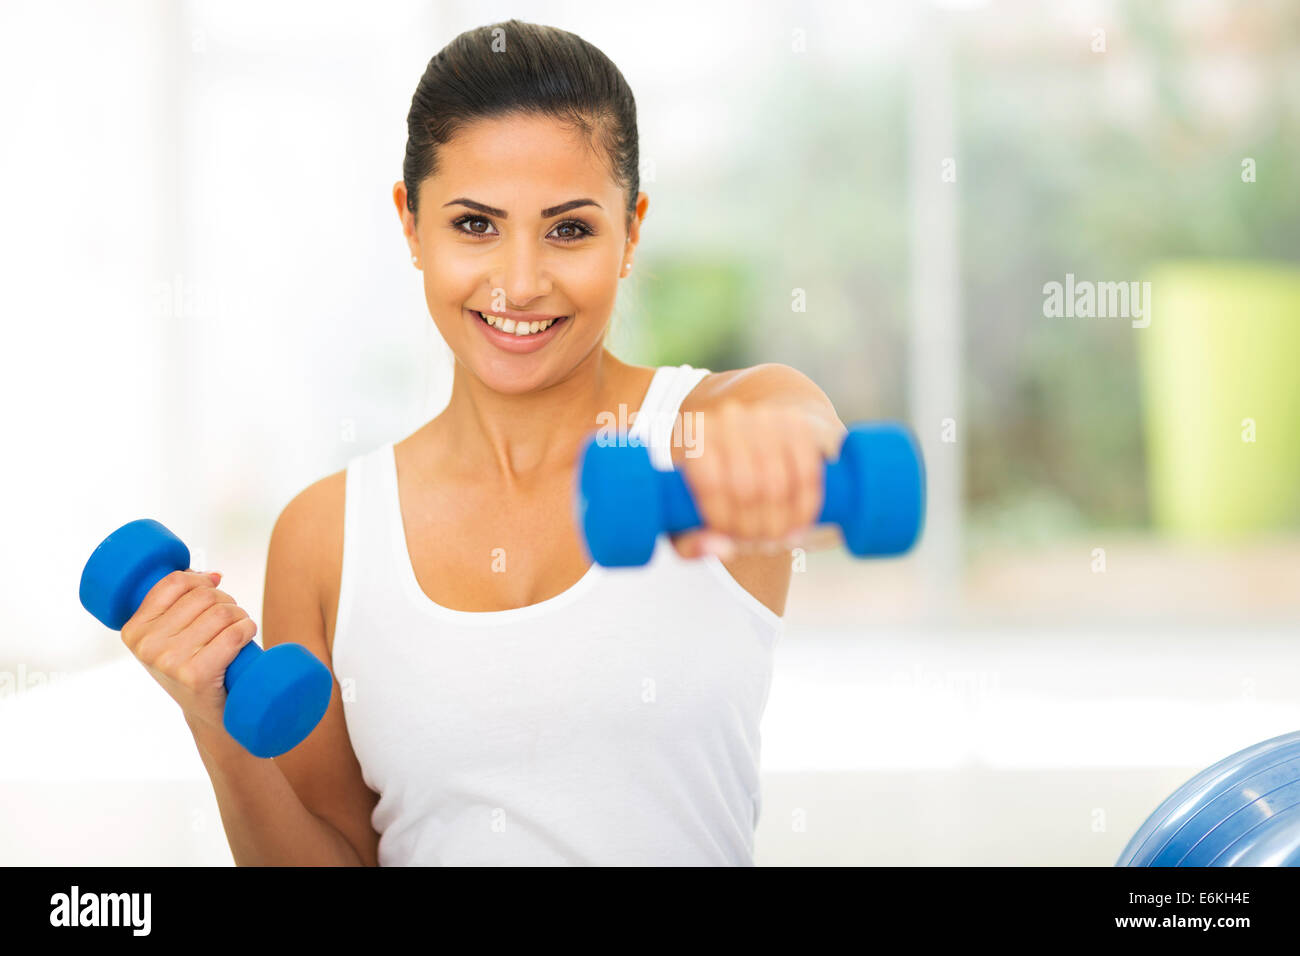 portrait of pretty woman working out with dumbbells - Stock Image